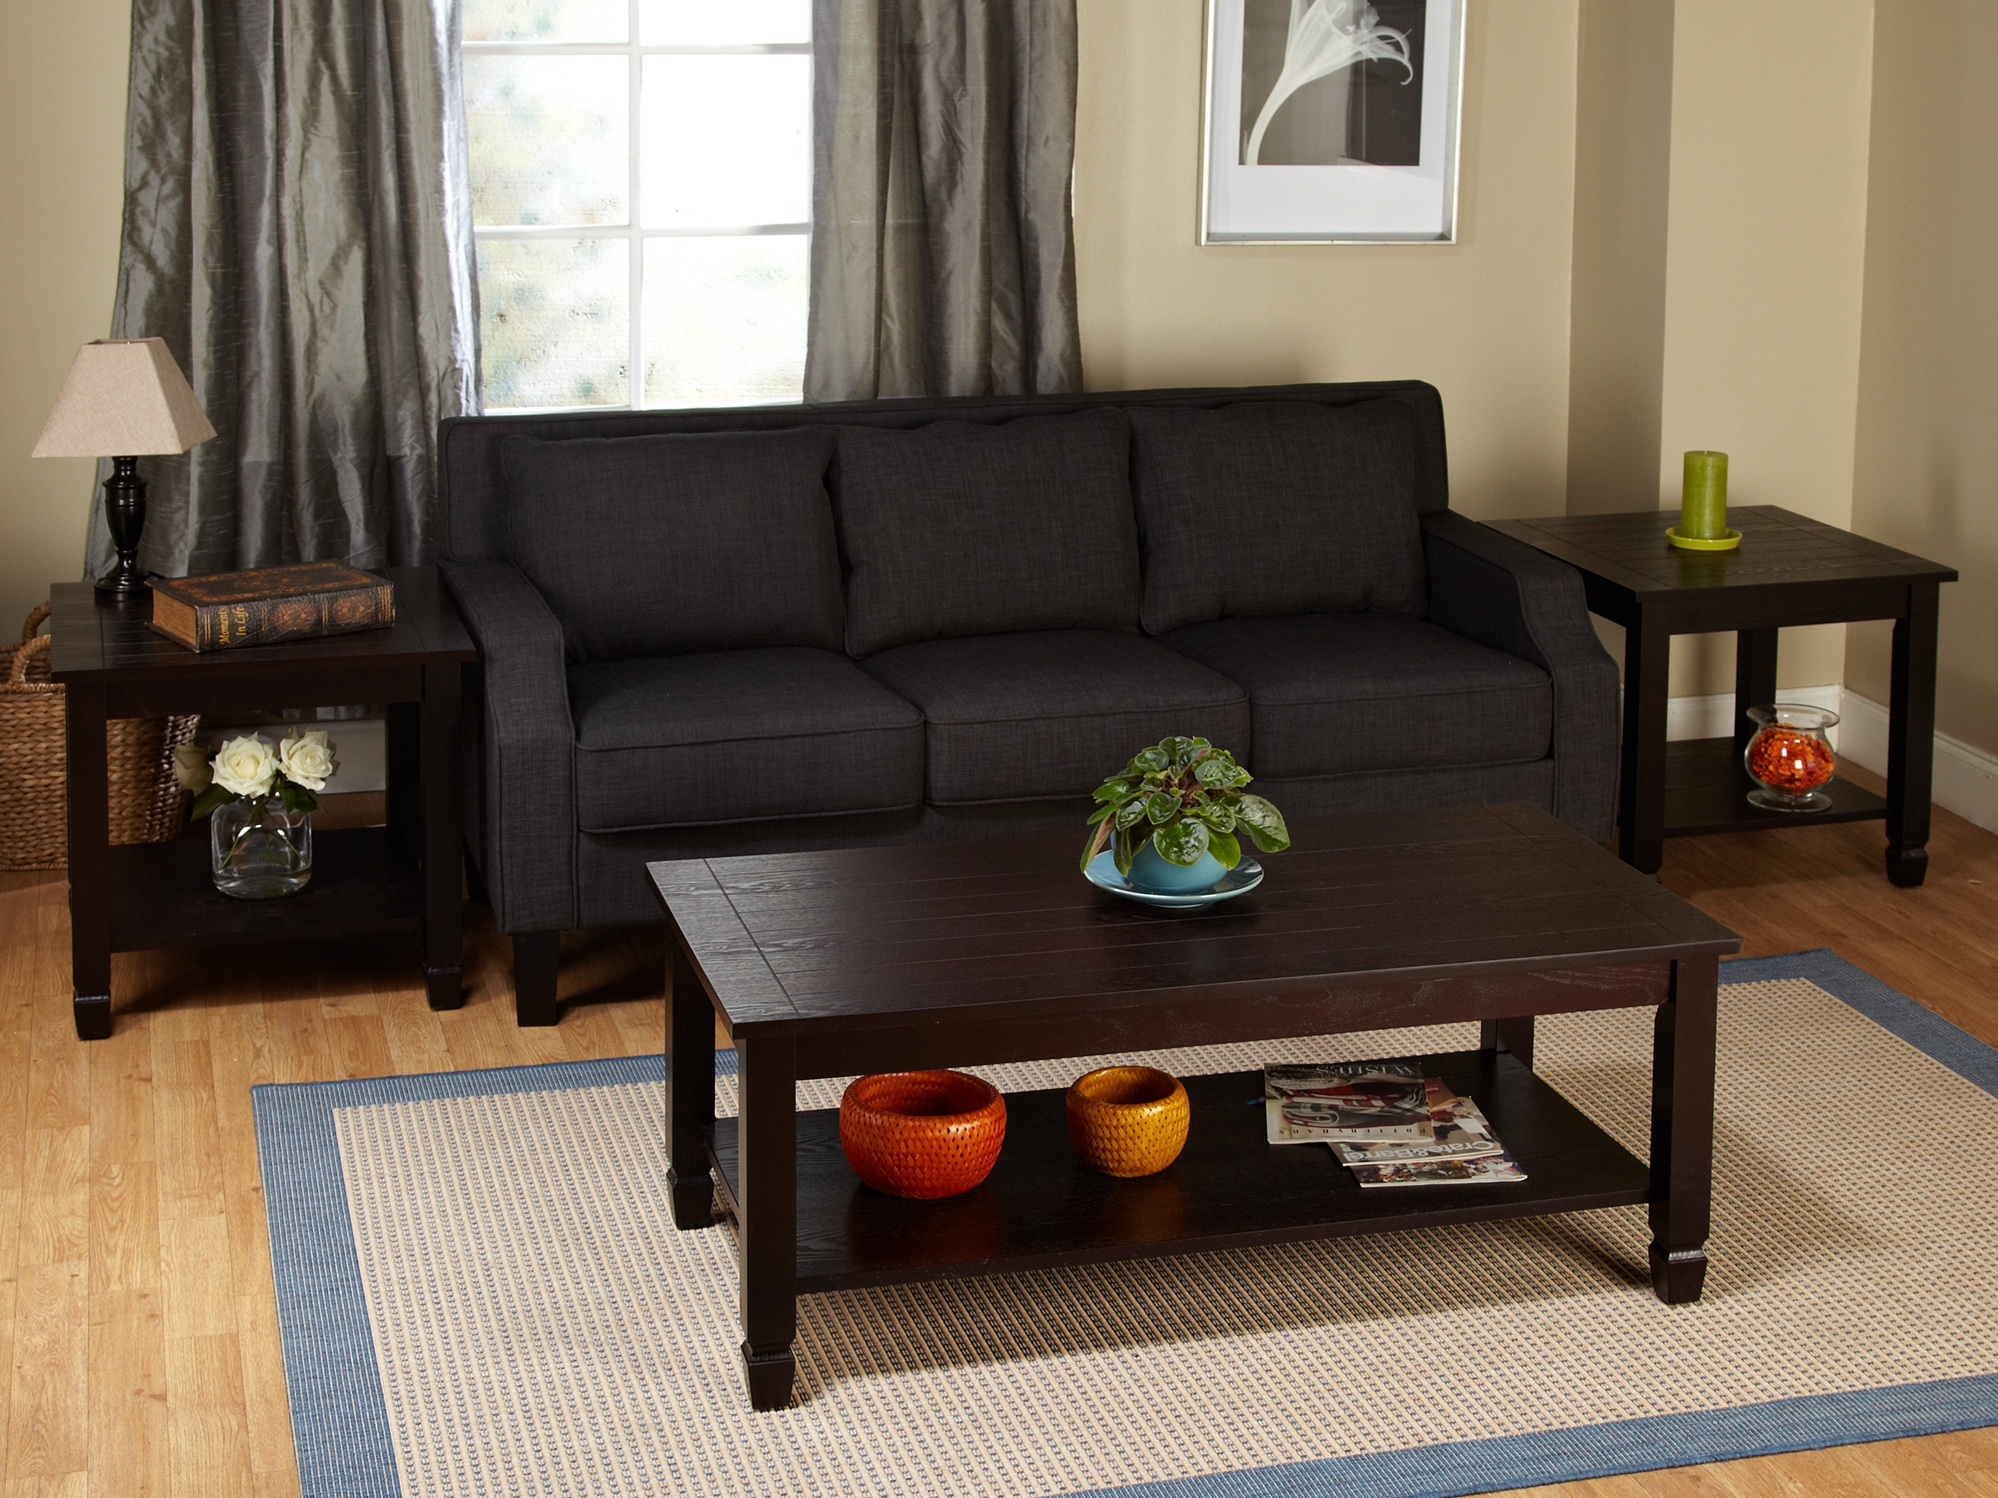 Overstock Coffee Table Design s